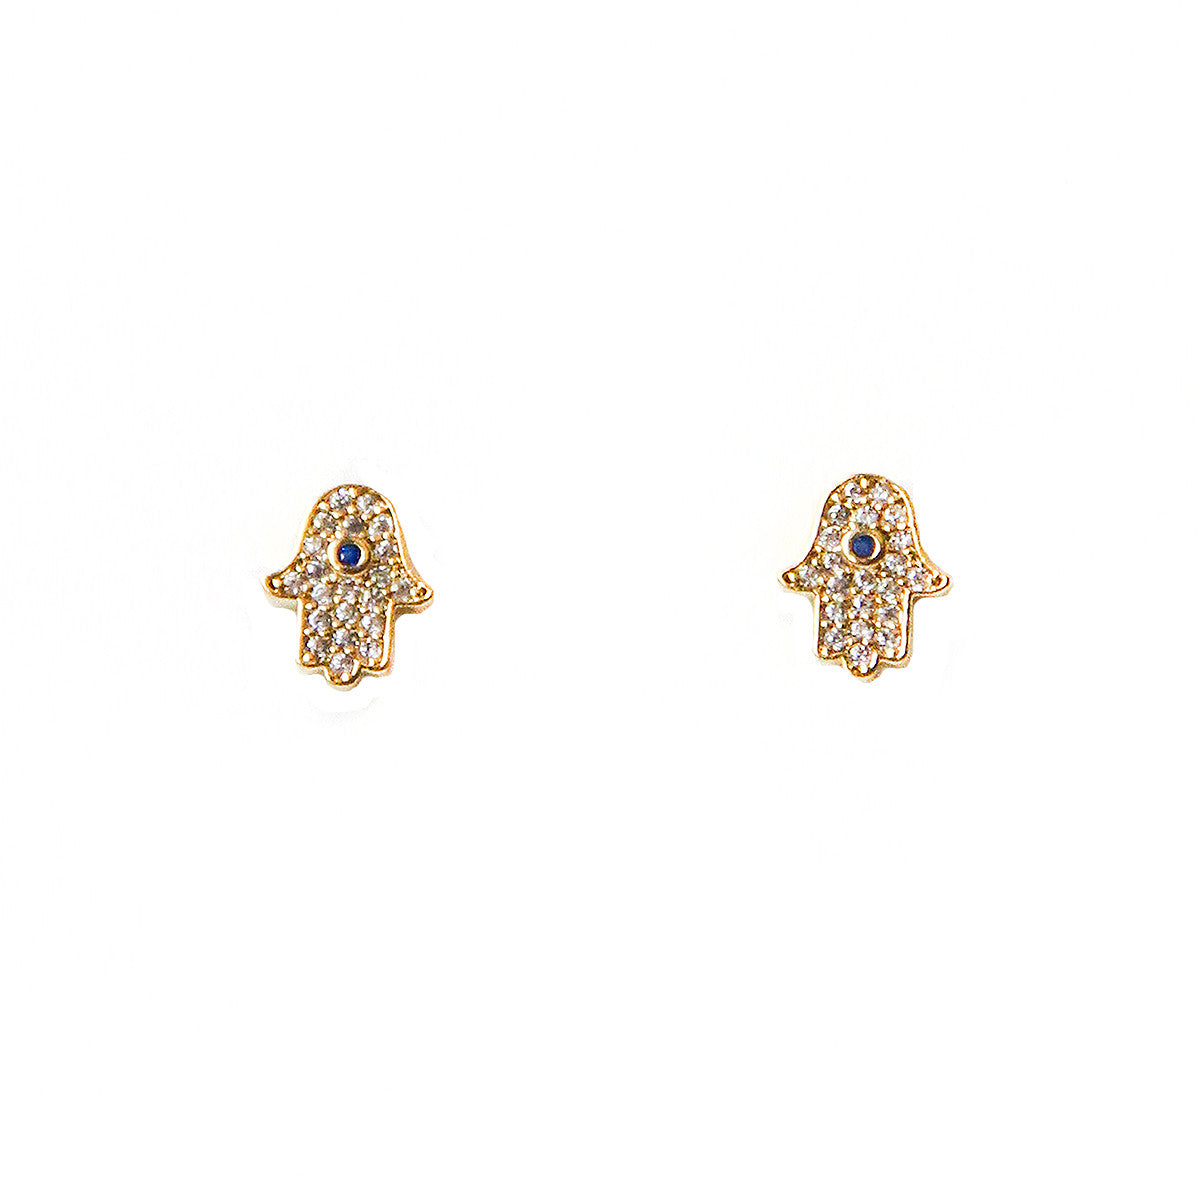 PAVE MINI HAMSA EARRINGS